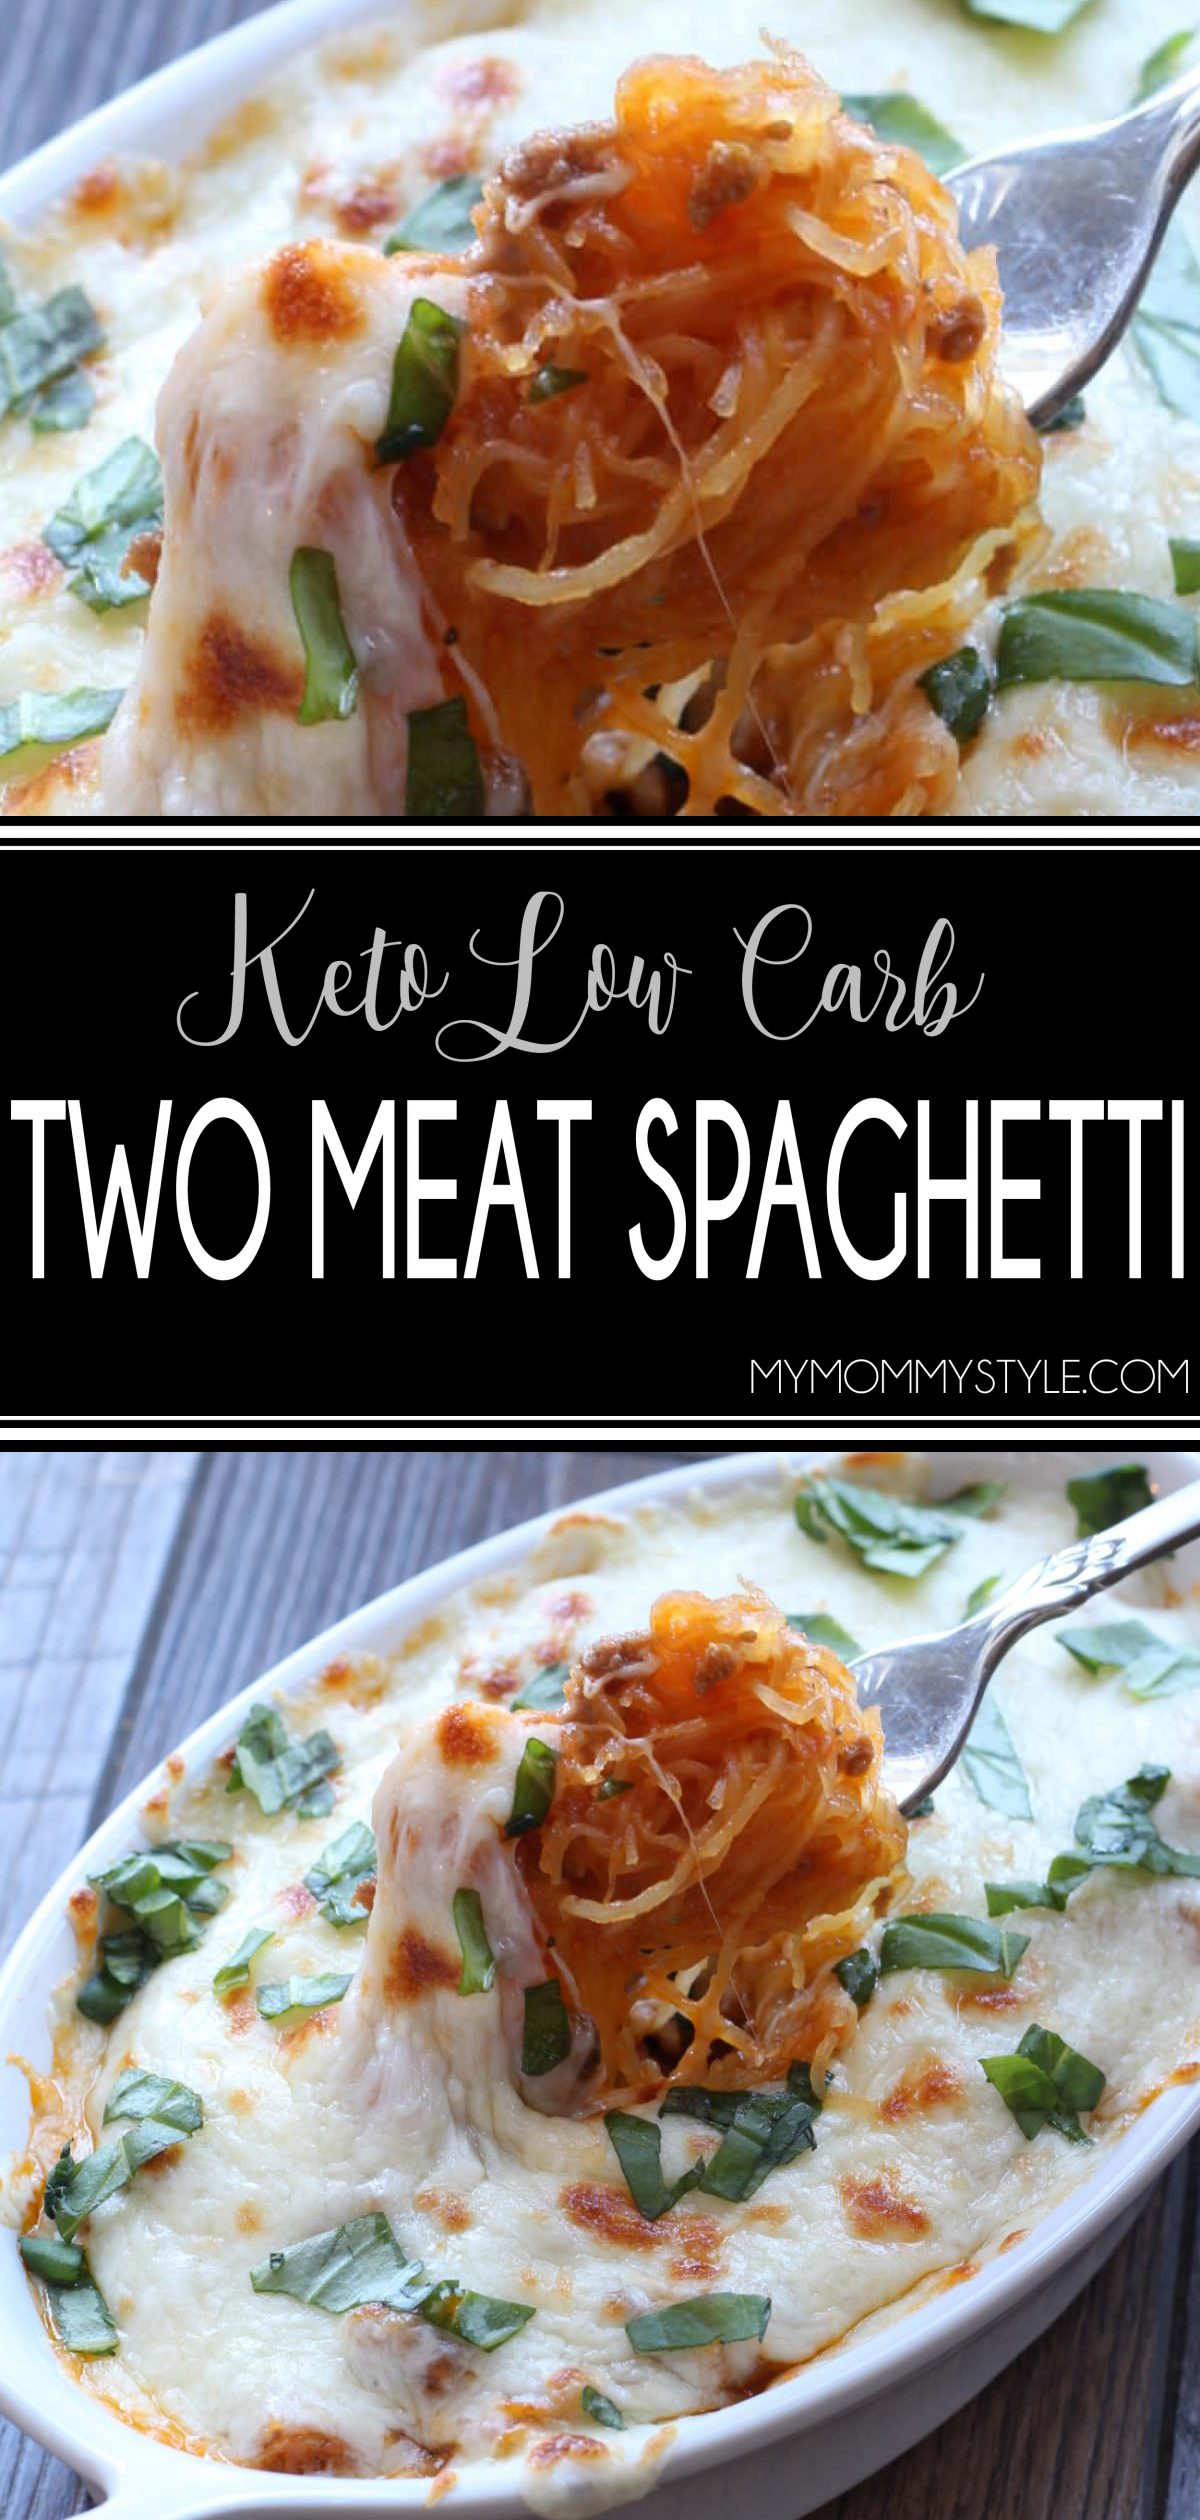 This keto low carb spaghetti is a healthy variation of my mom's amazing two meat spaghetti.  The flavor that comes from combining ground beef and Italian sausage is mind blowing! via @mymommystyle